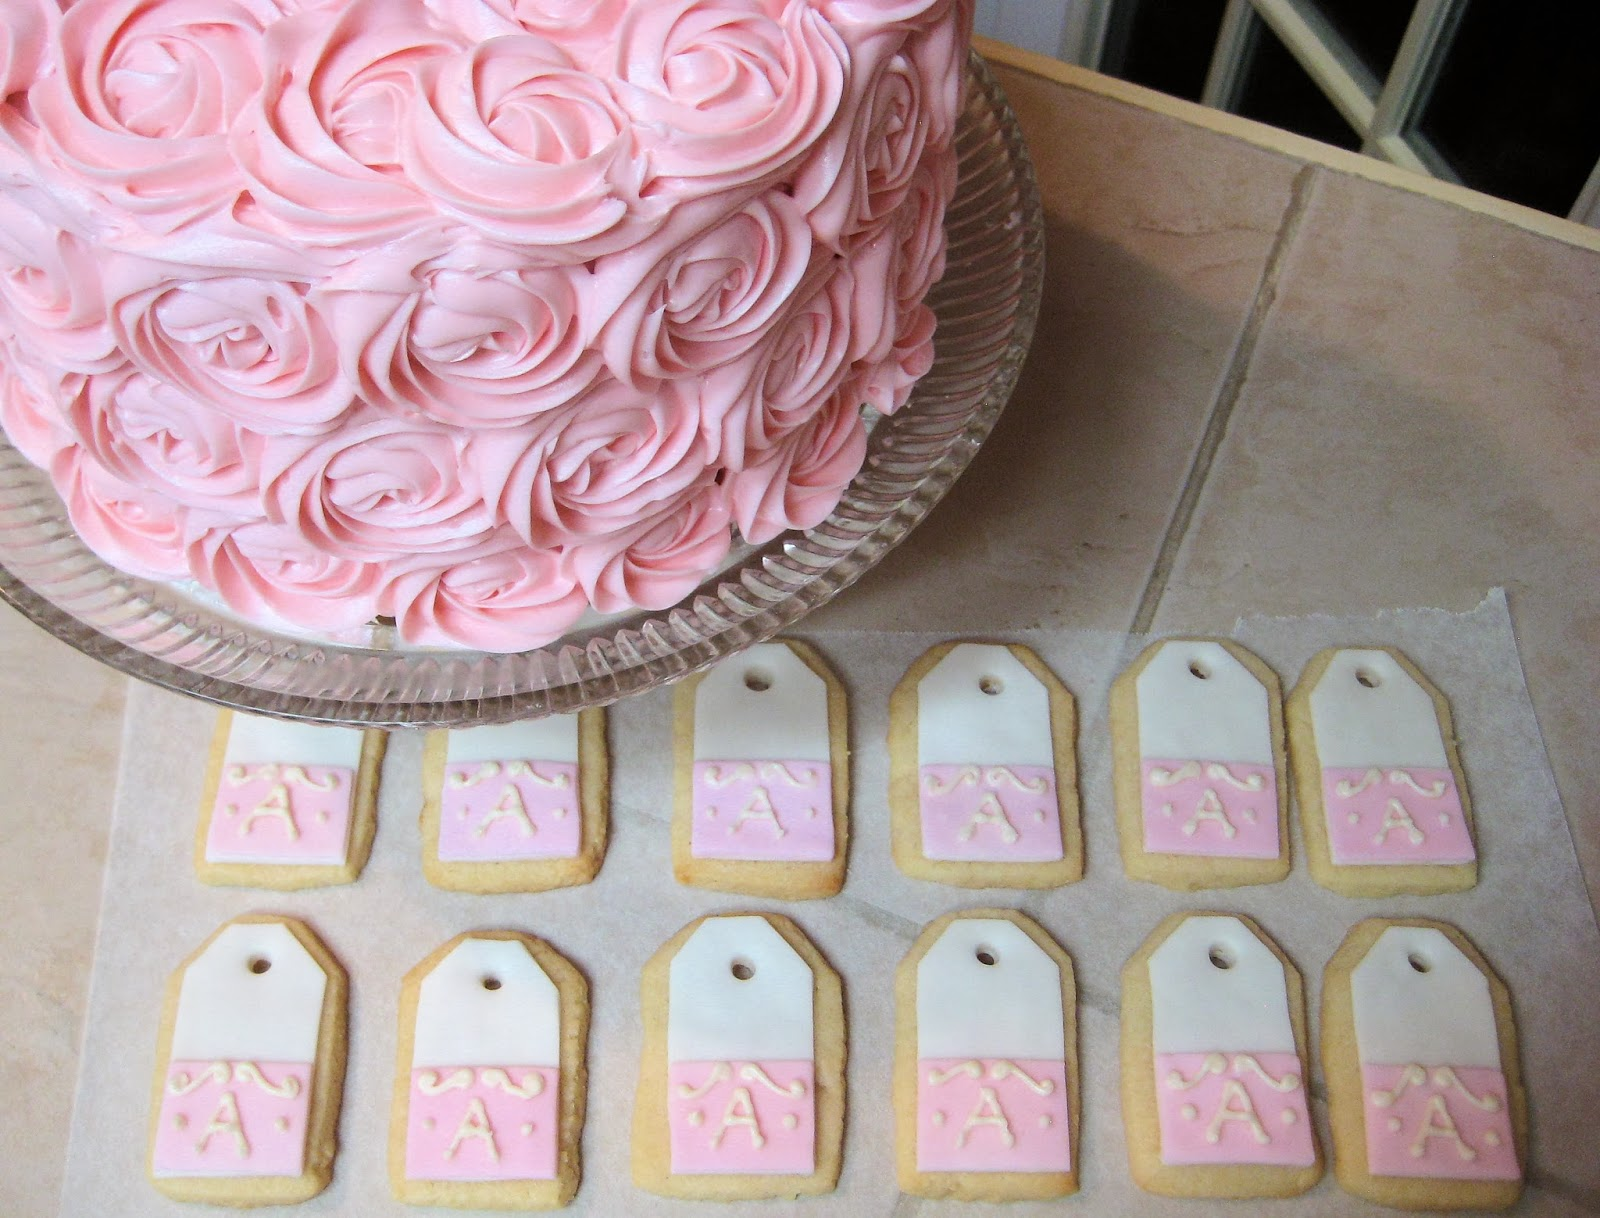 Shabby Chic Pink Rose Cake and Teabag Cookies Together - Close-Up 1